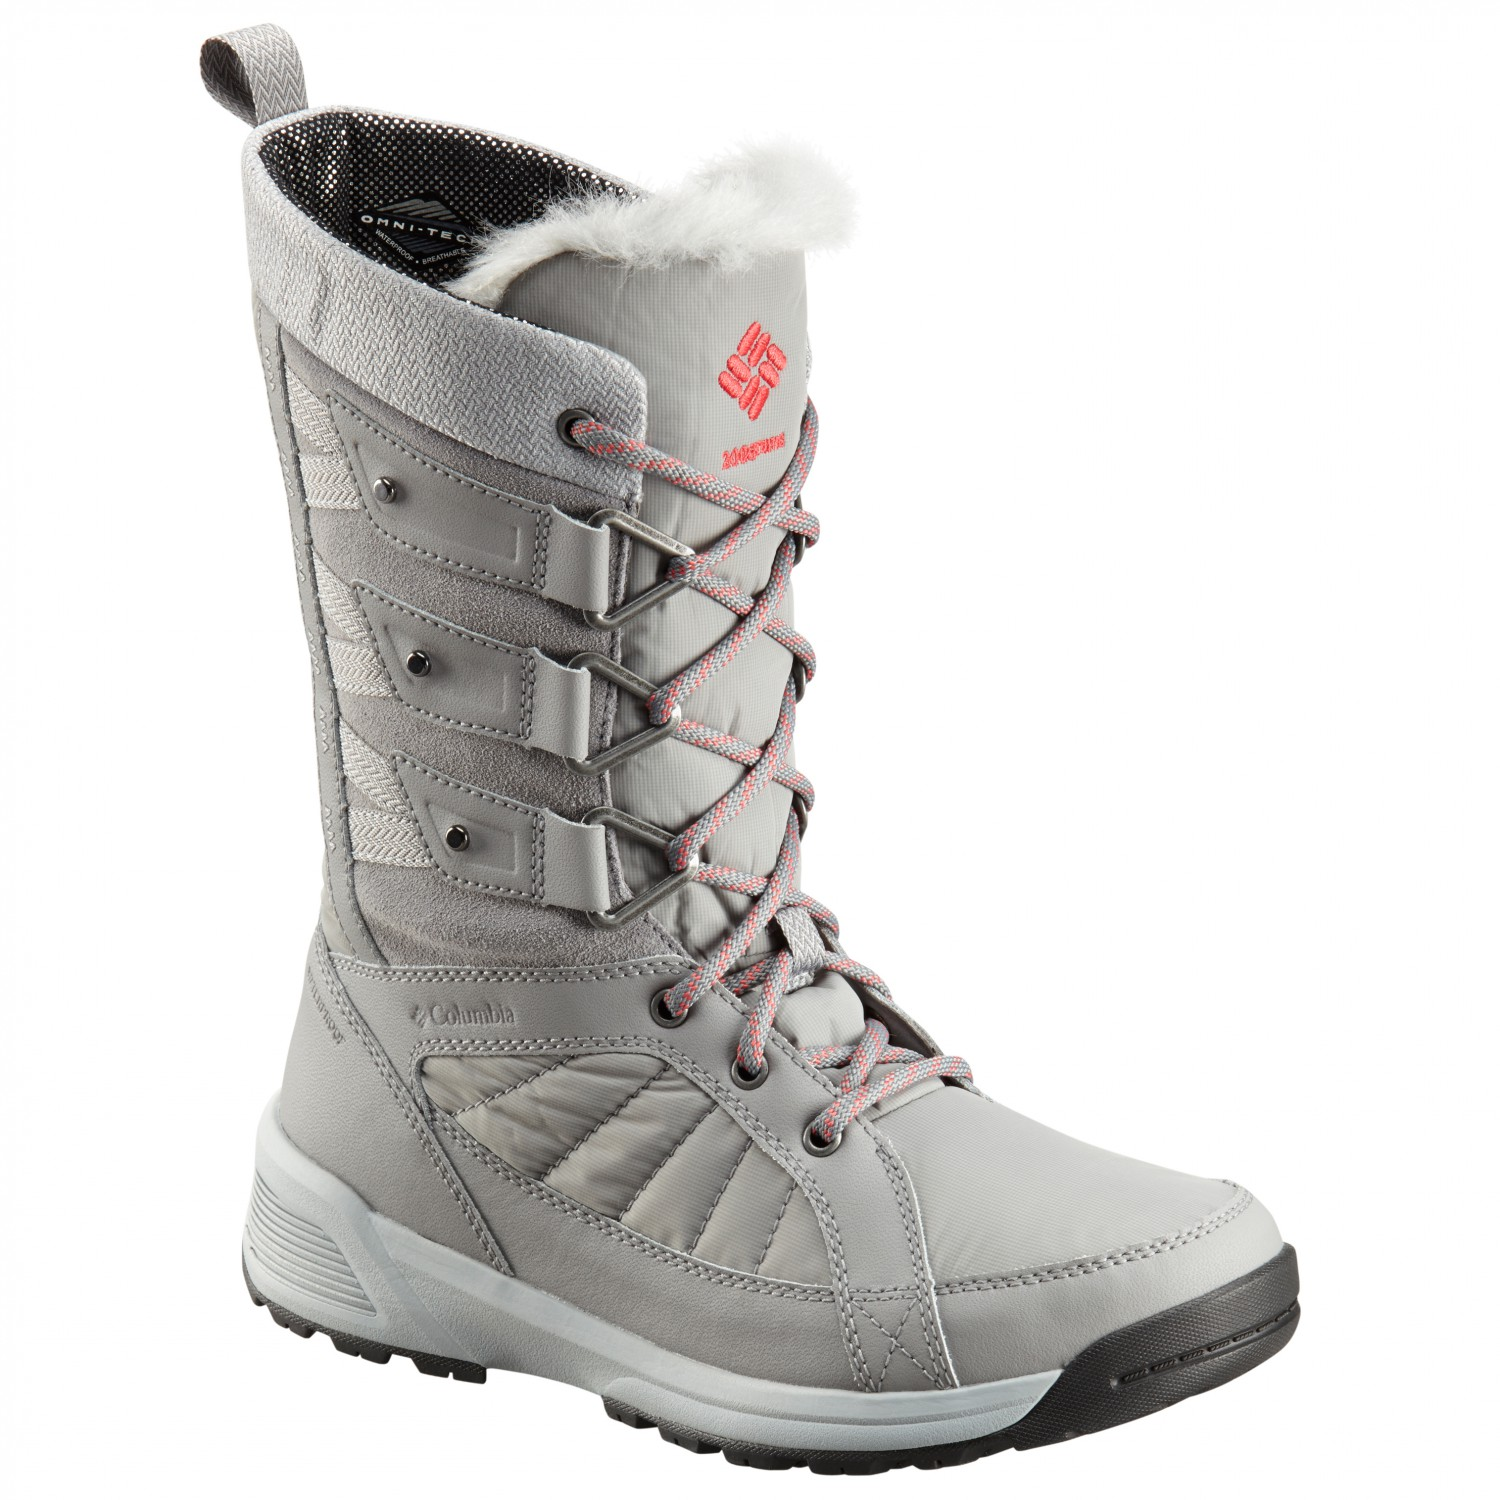 07ac25a6f535 Columbia Meadows Omni-Heat - Winter Boots Women's | Free UK Delivery ...